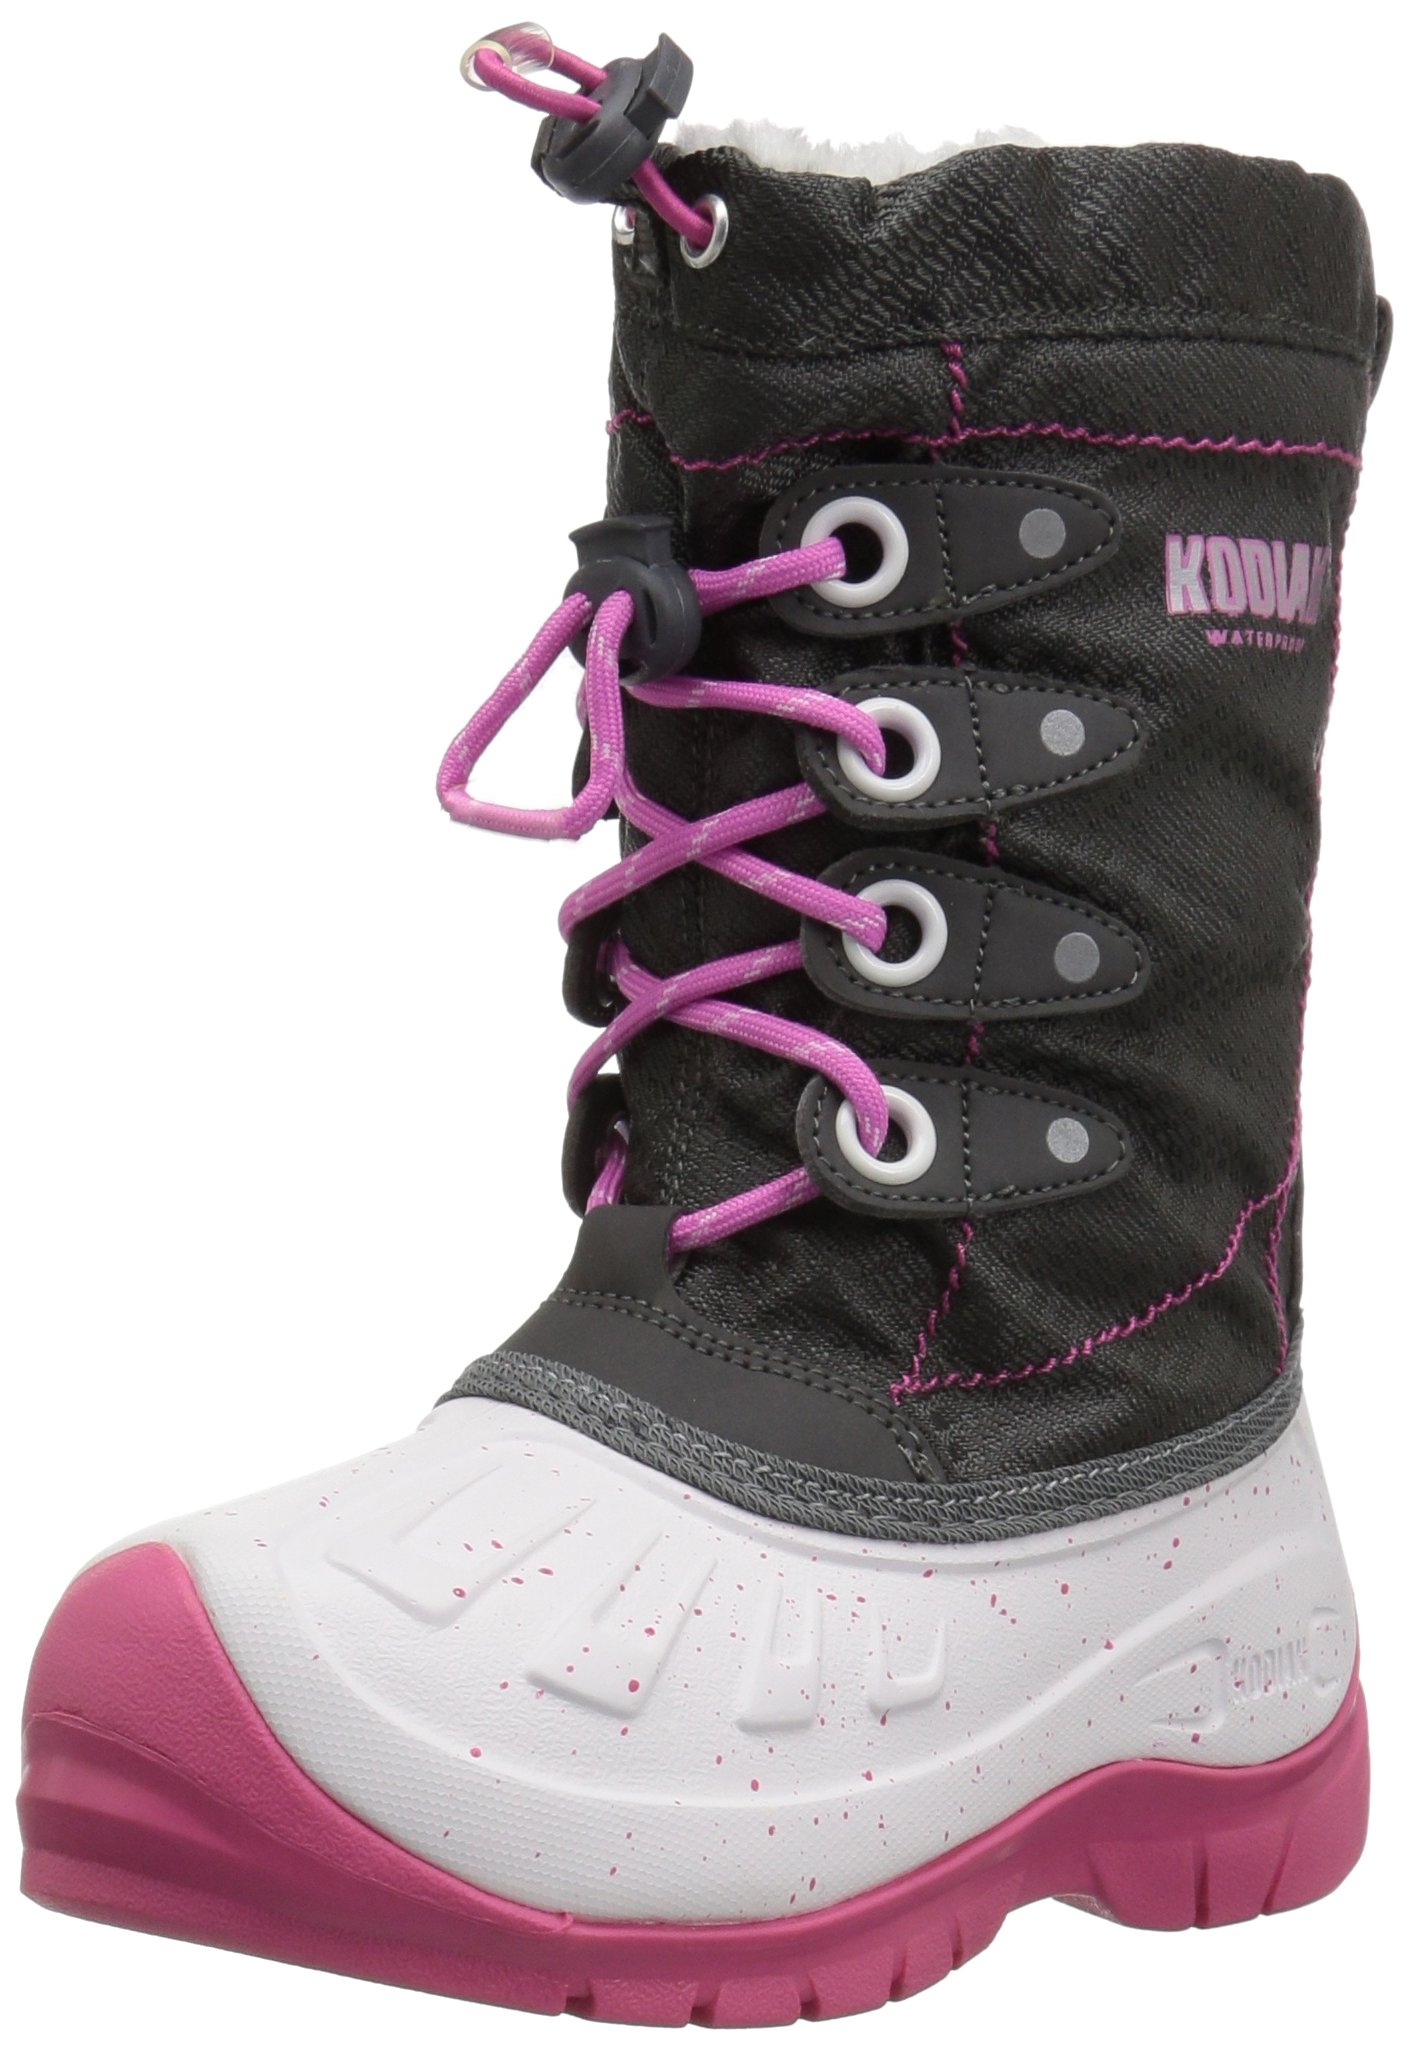 Kodiak Girls' Cali Snow Boot, Grey/White/Cotton Candy Pink, 13 M US Little Kid